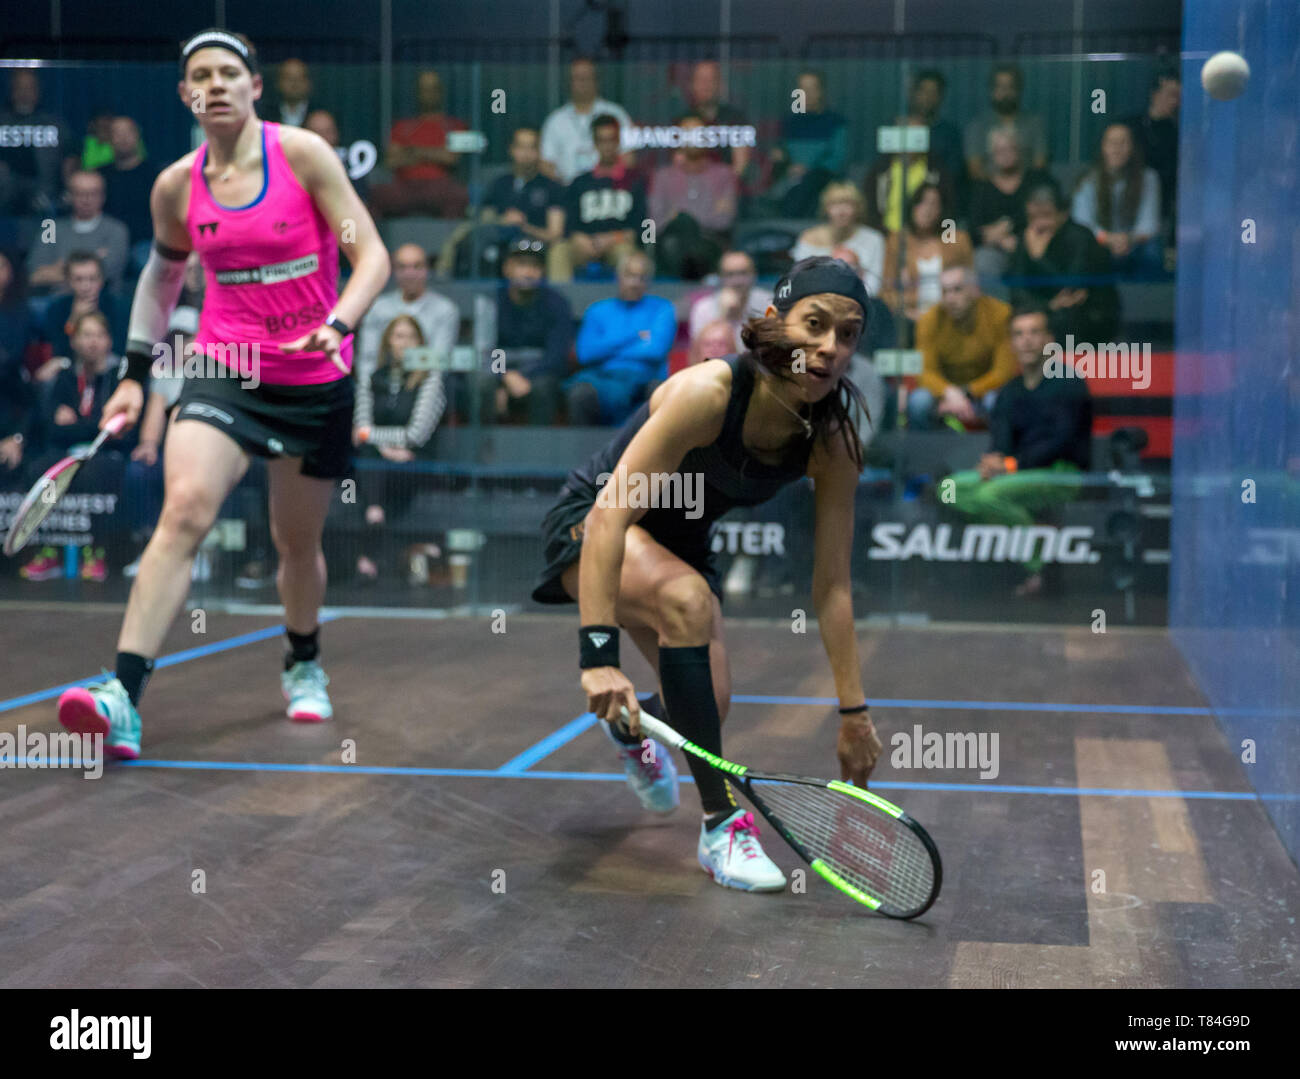 National Squash Centre, Manchester, UK. 10th May, 2019. Manchester Open Squash championships, day 2; Nicol David (MAS) right, in her second round match against Sarah-Jane Perry (ENG) Credit: Action Plus Sports/Alamy Live News - Stock Image